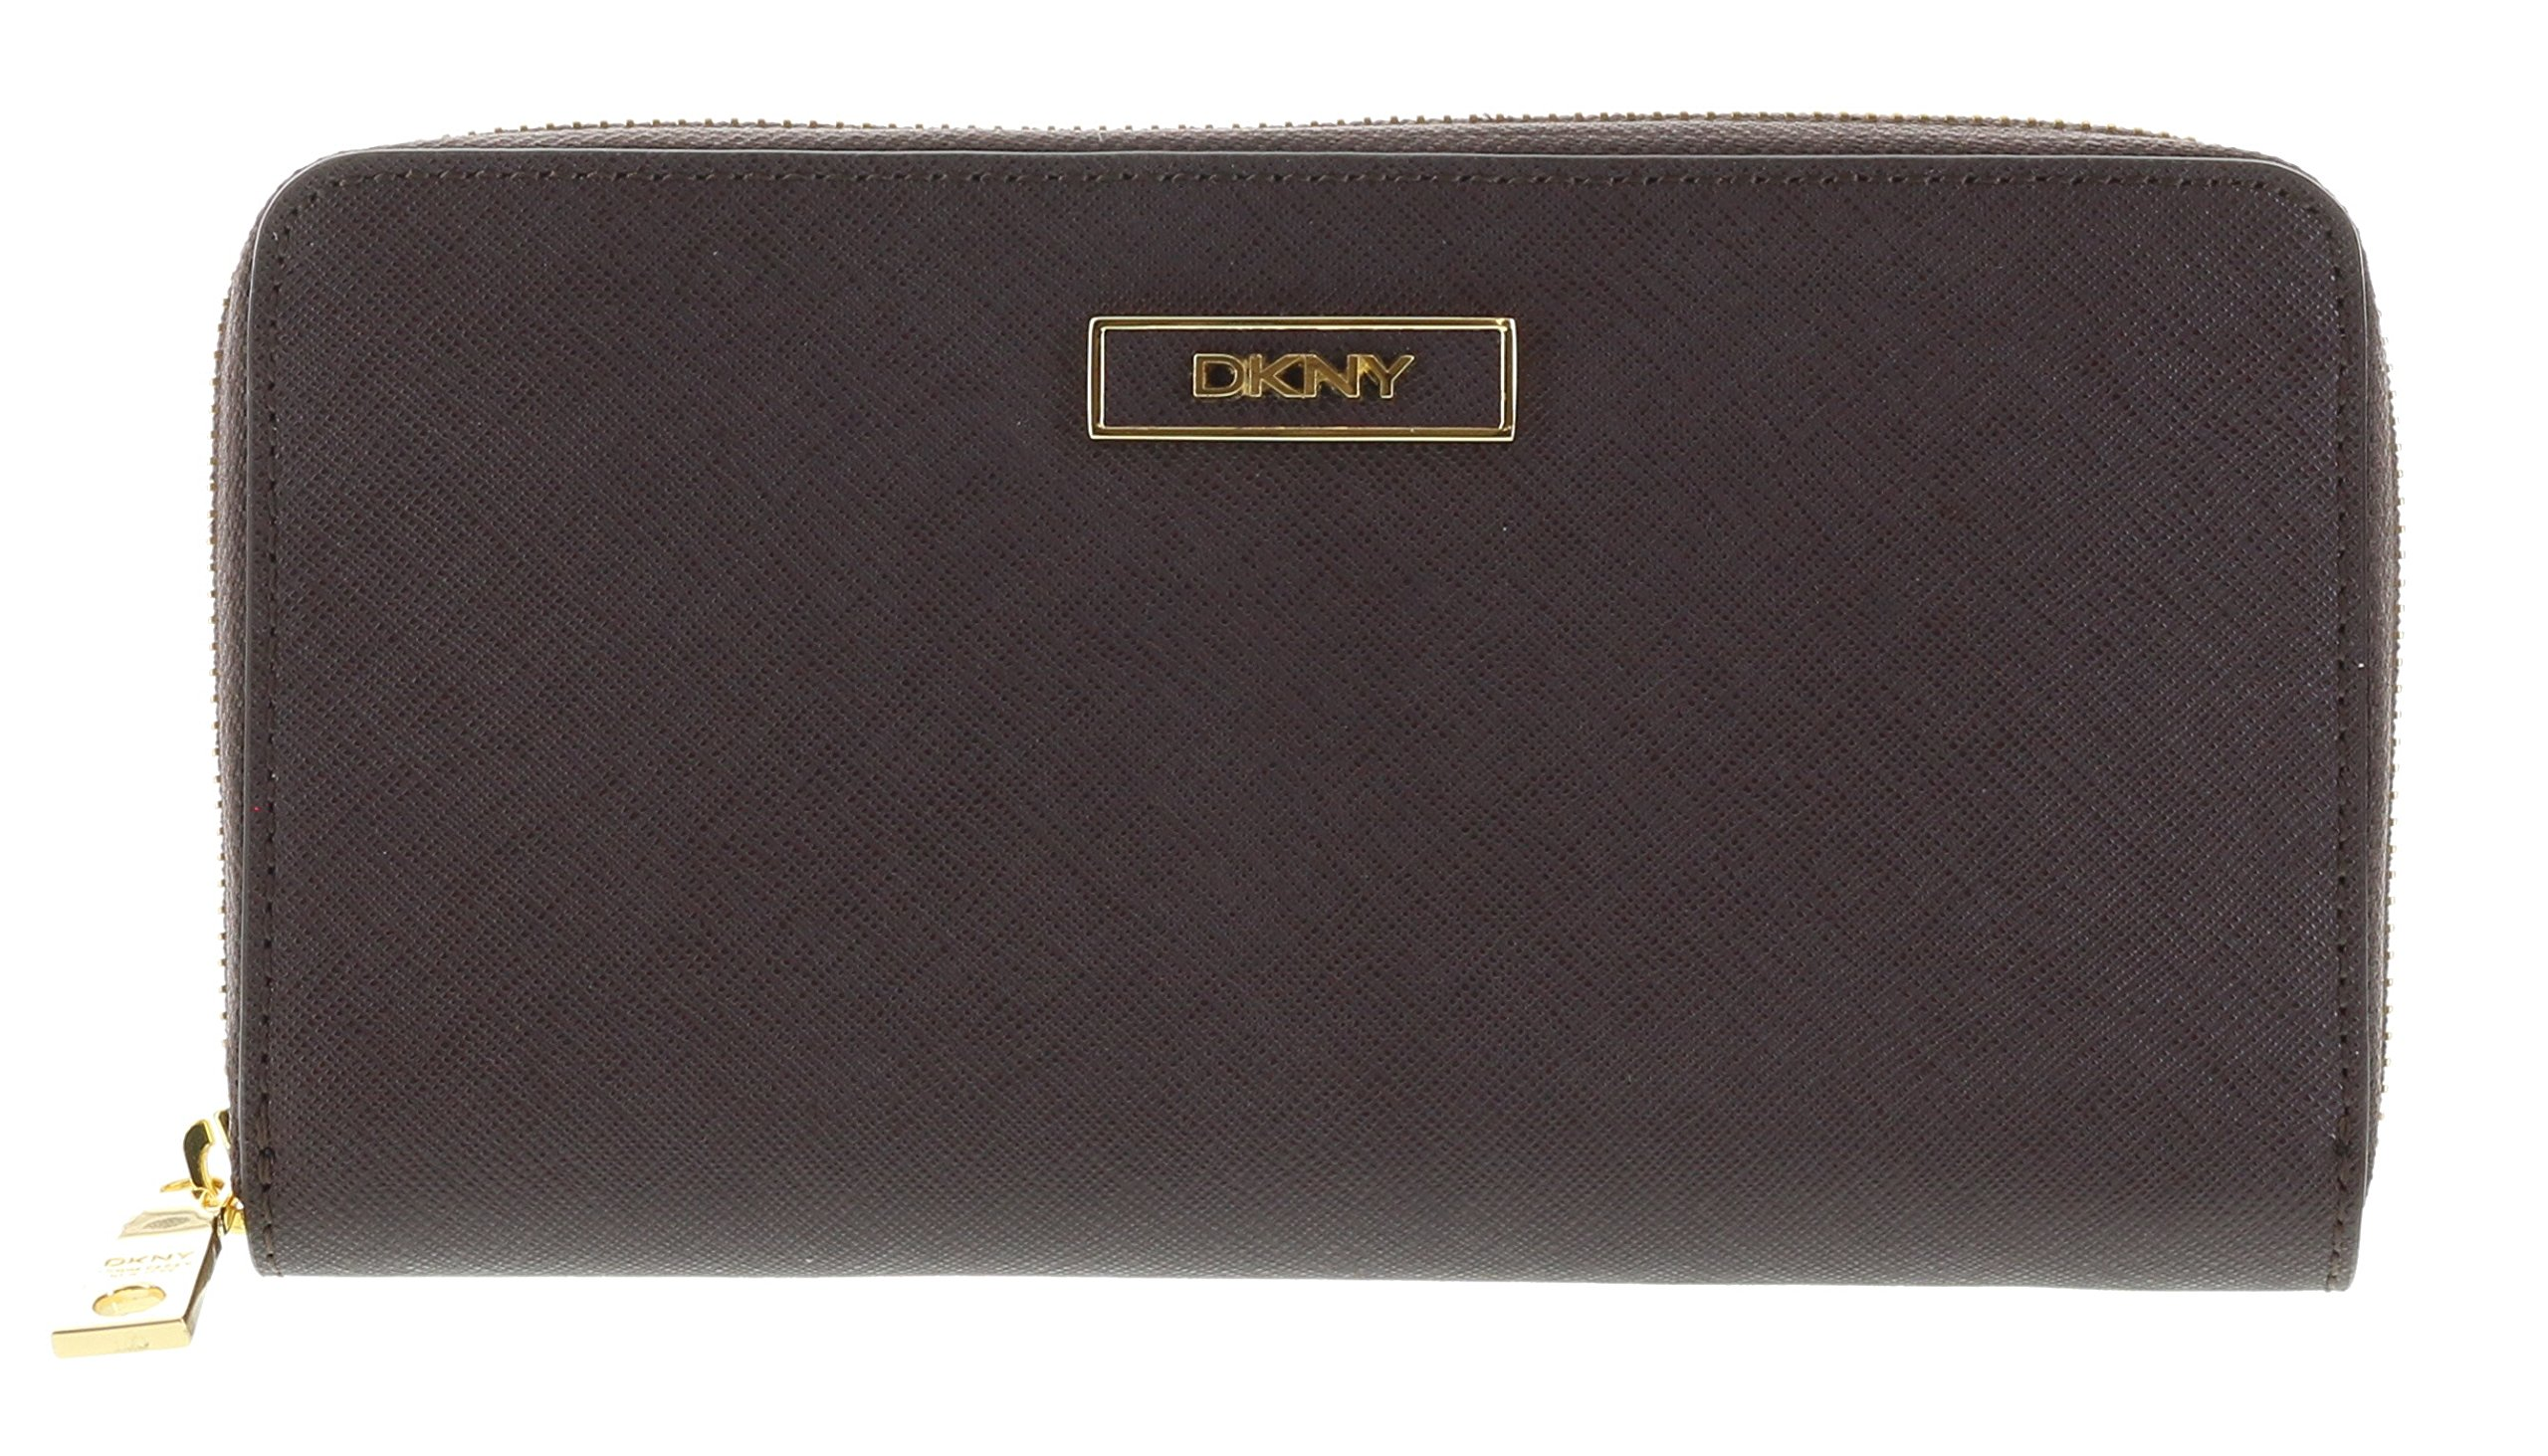 DKNY Women's SLGS Saffiano Leather Wallet Style 761522104 (Burgundy)